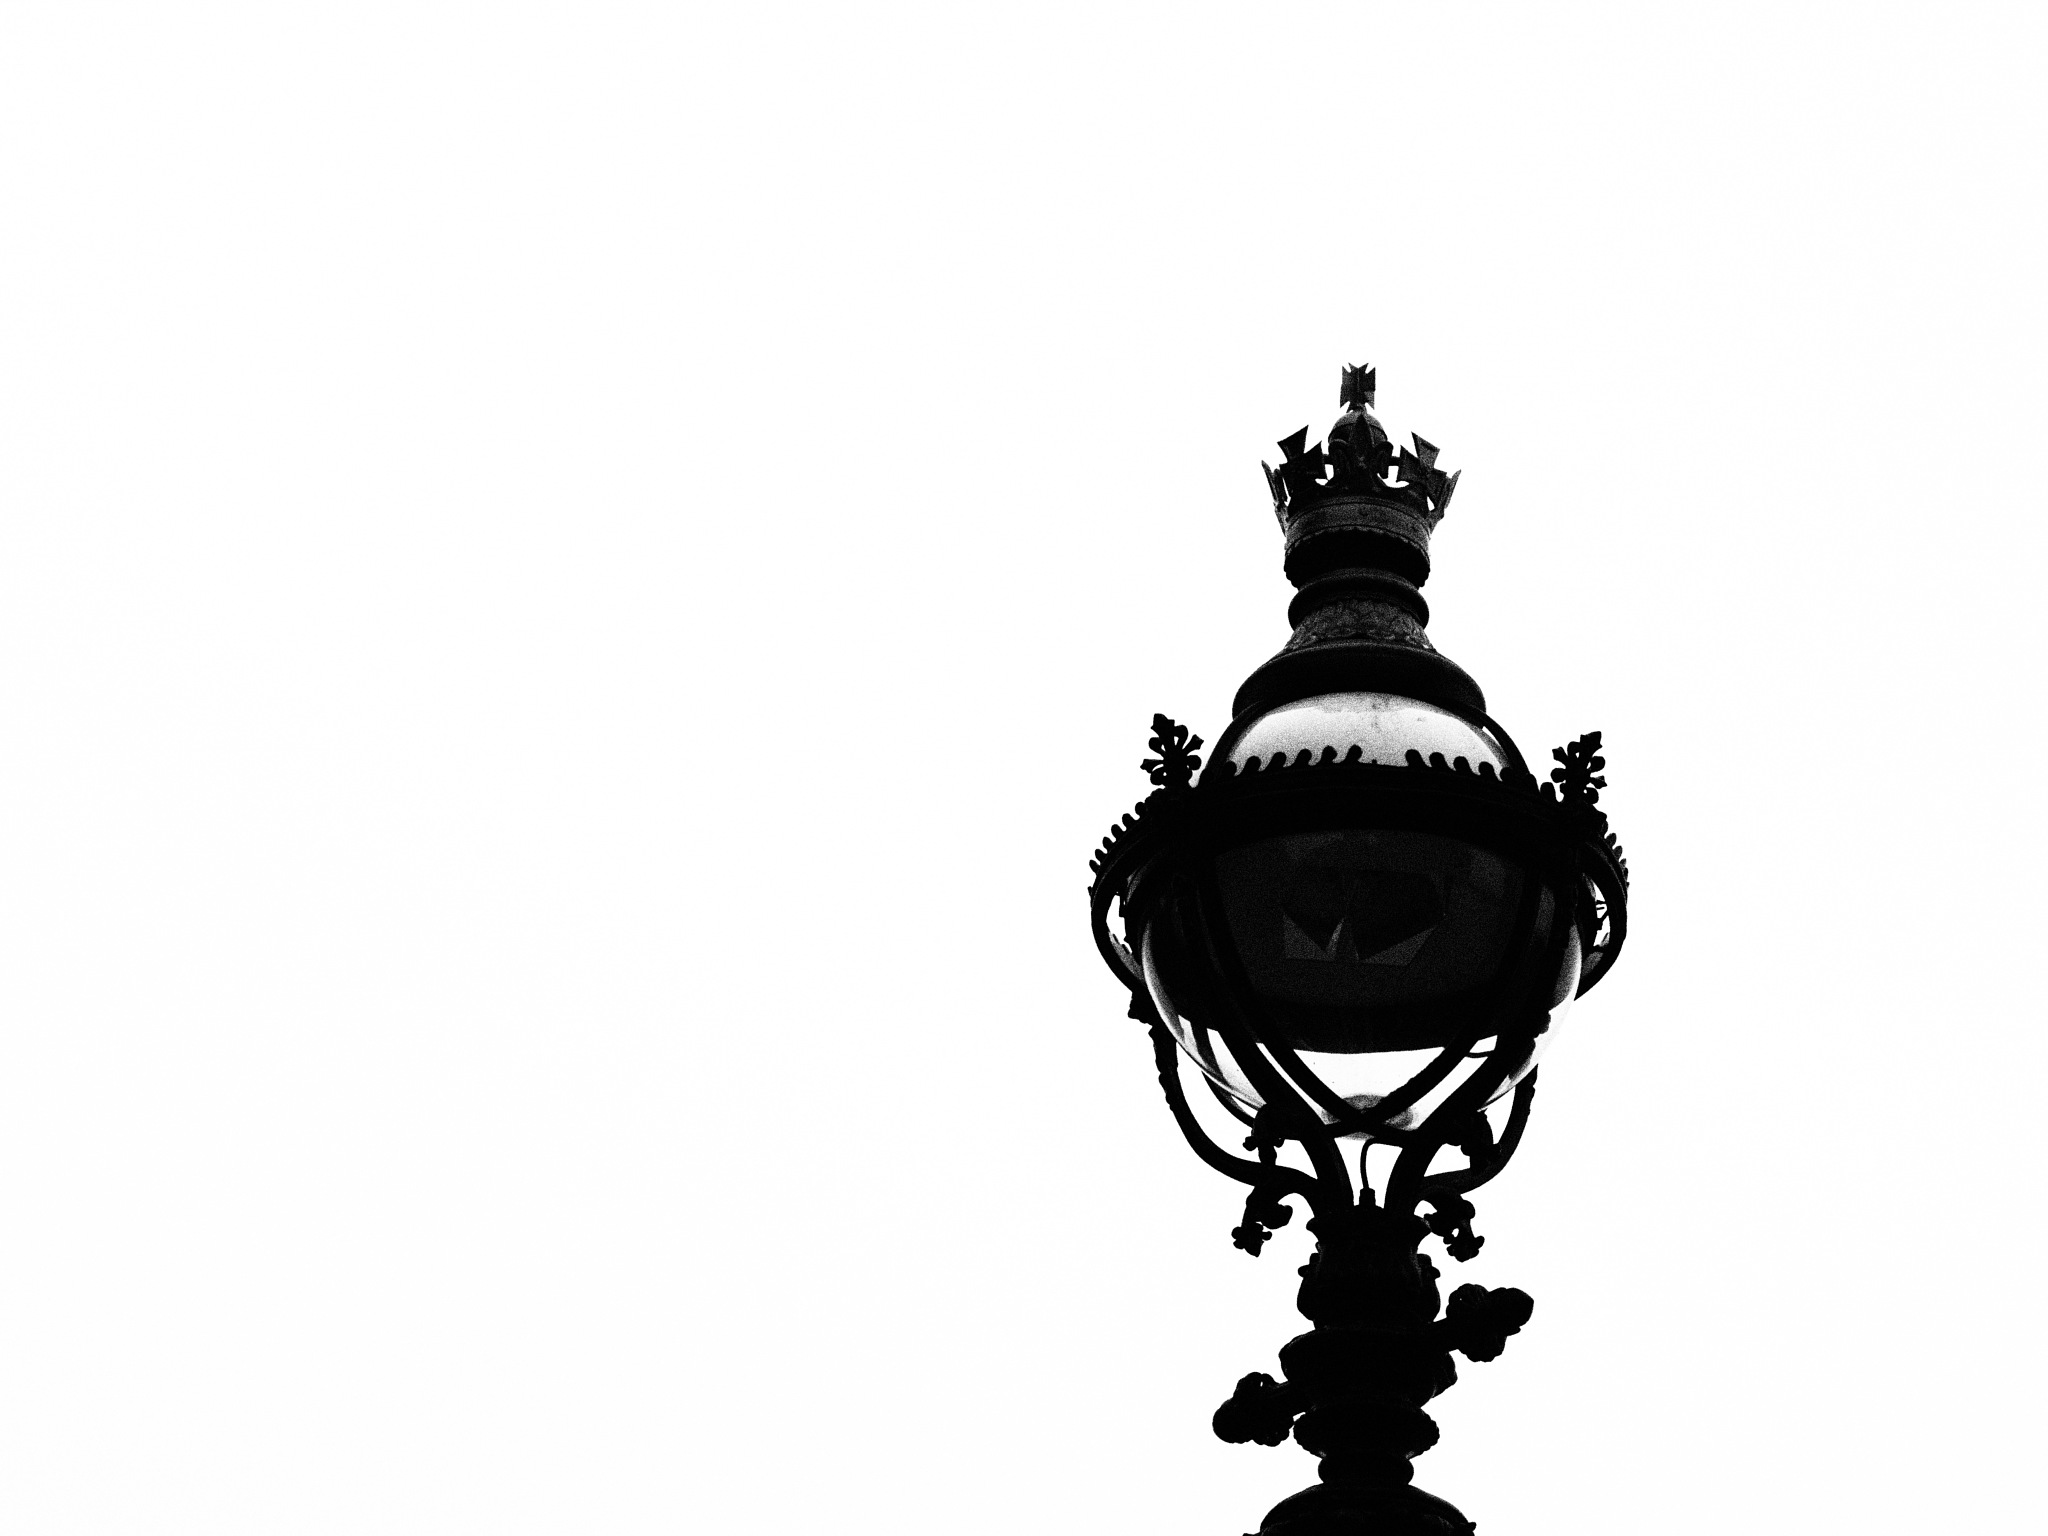 Ingrained Monarchy by Thomas Peck